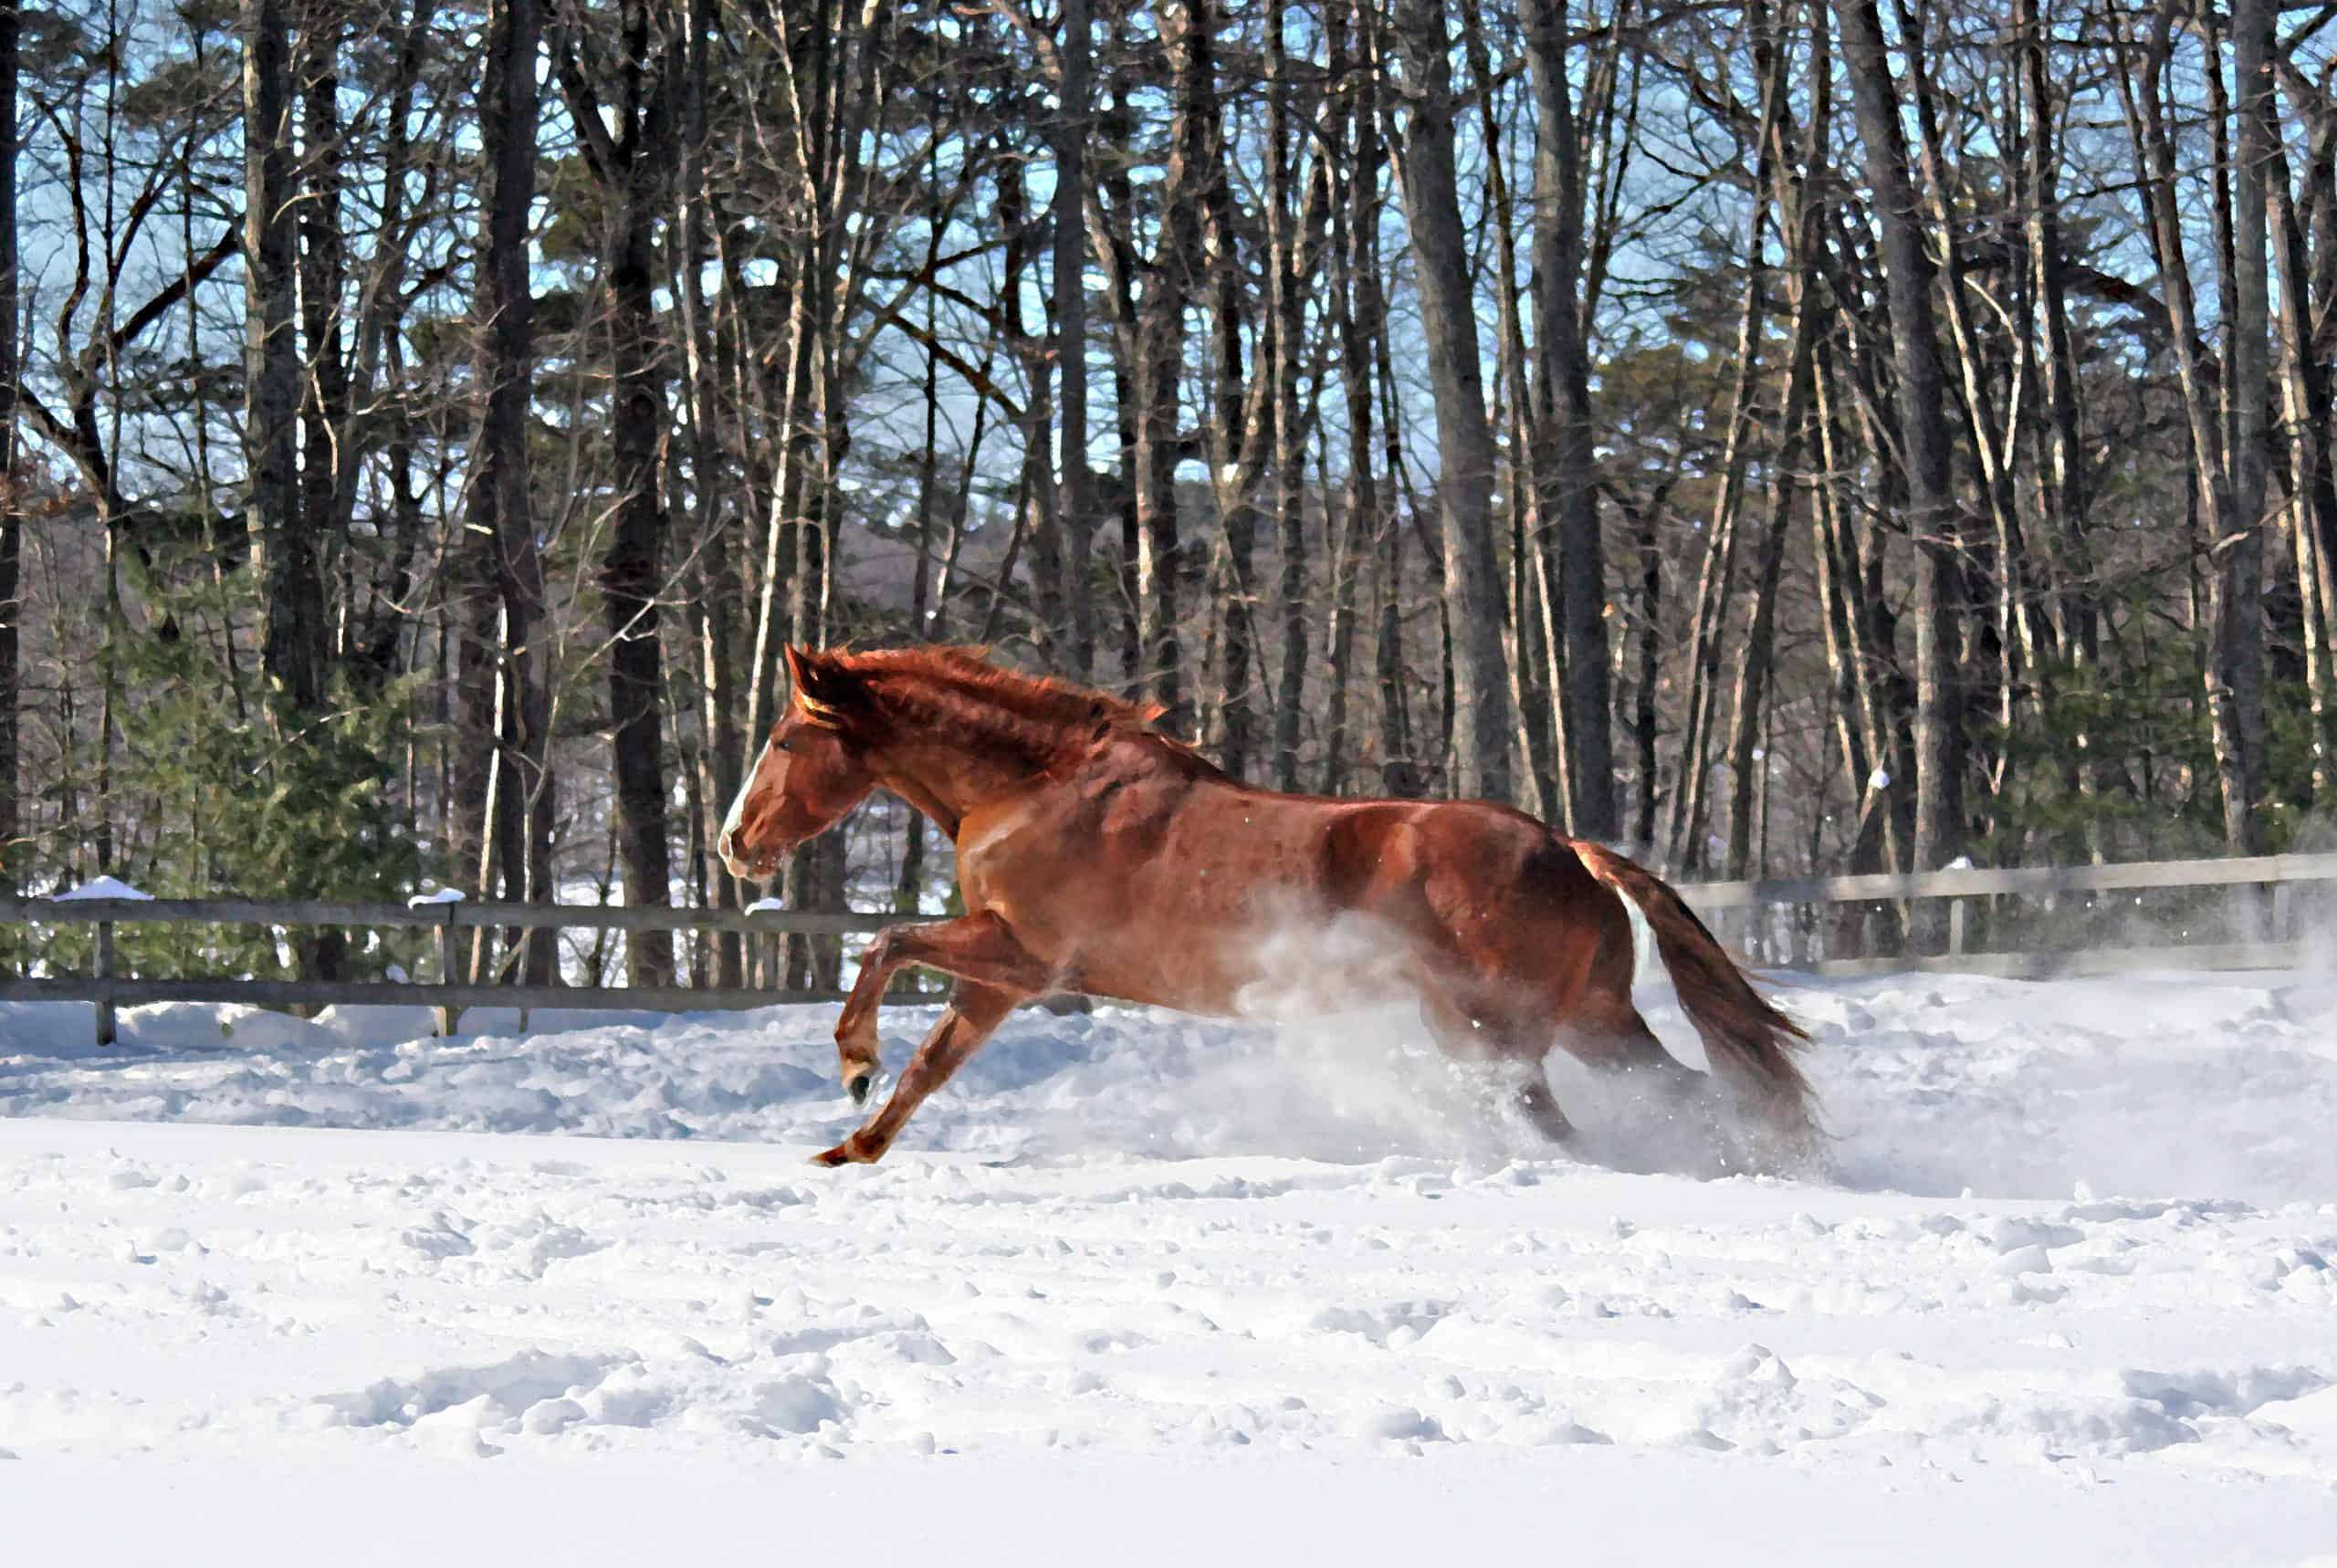 A clear blue winter day this Quarter Horse that I rescued from going to slaughter is enjoying a new-fallen snow. I took this photo in the winter of 2016.